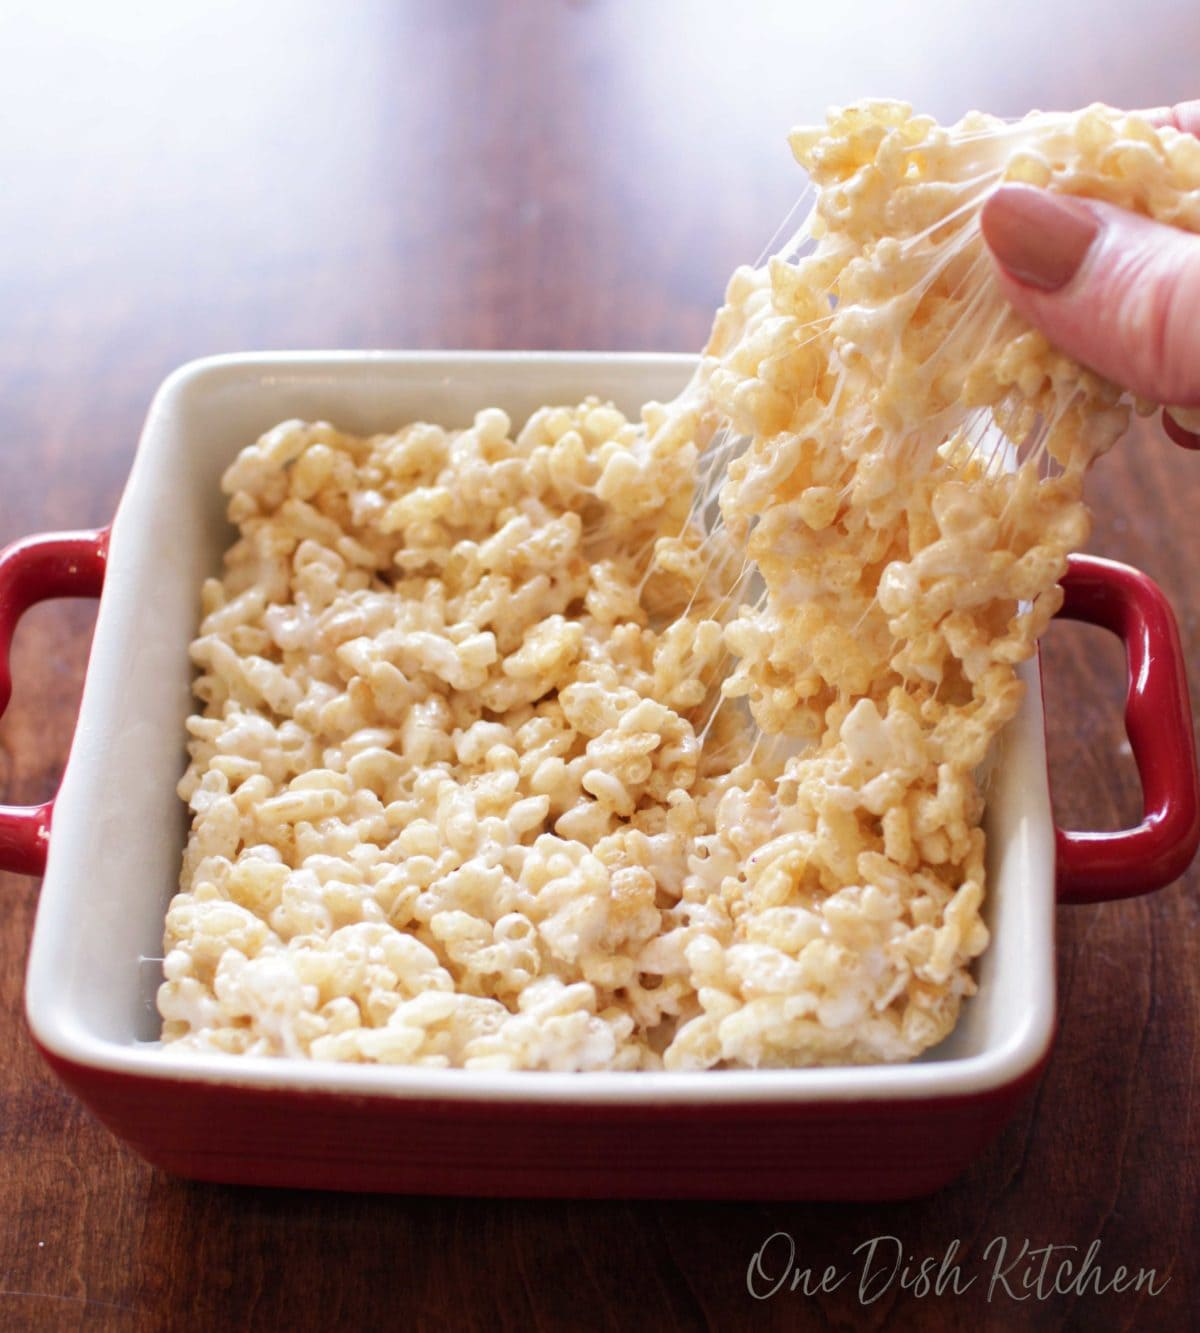 Pulling off a piece of a rice krispie treat with fingers from a small baking dish